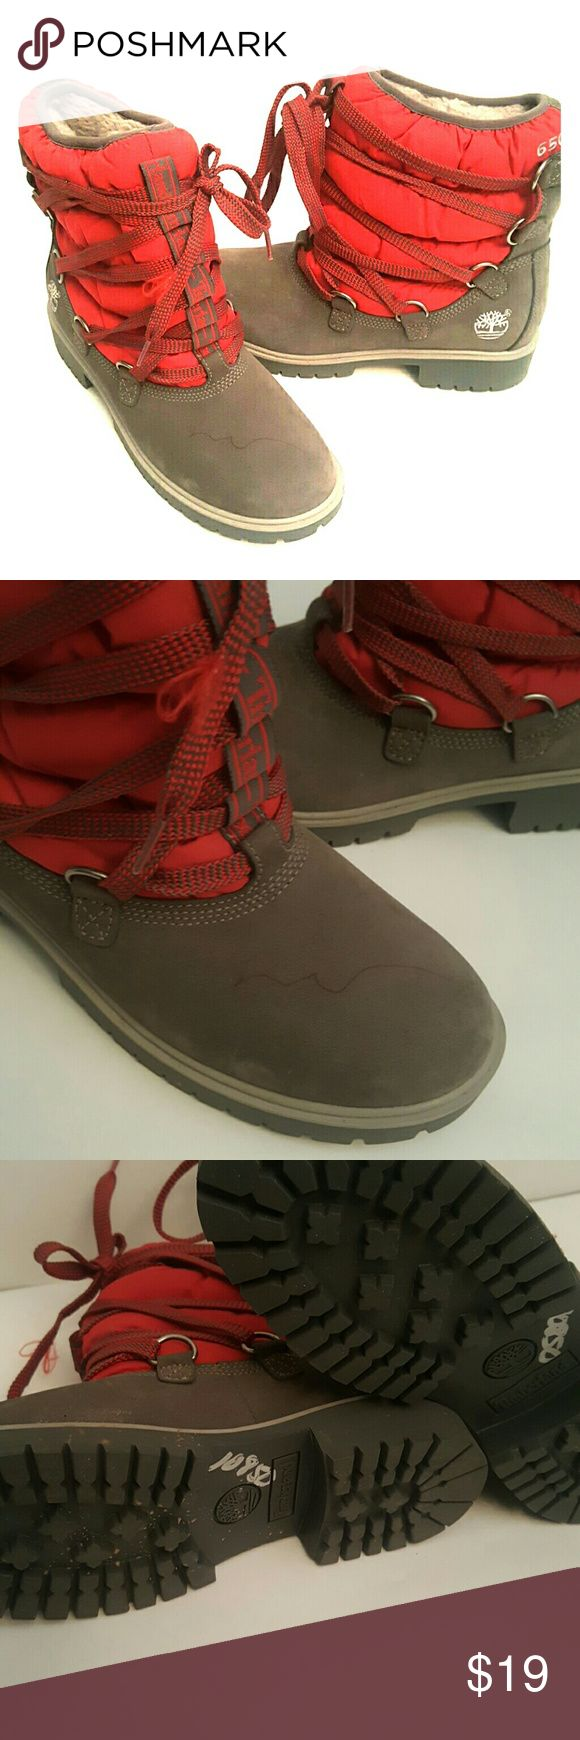 Timbaland boots They are grey and red with a red pen mark on top of the right shoe as well as a flawed shoes lace on the right.  In good condition. Shoes Lace Up Boots